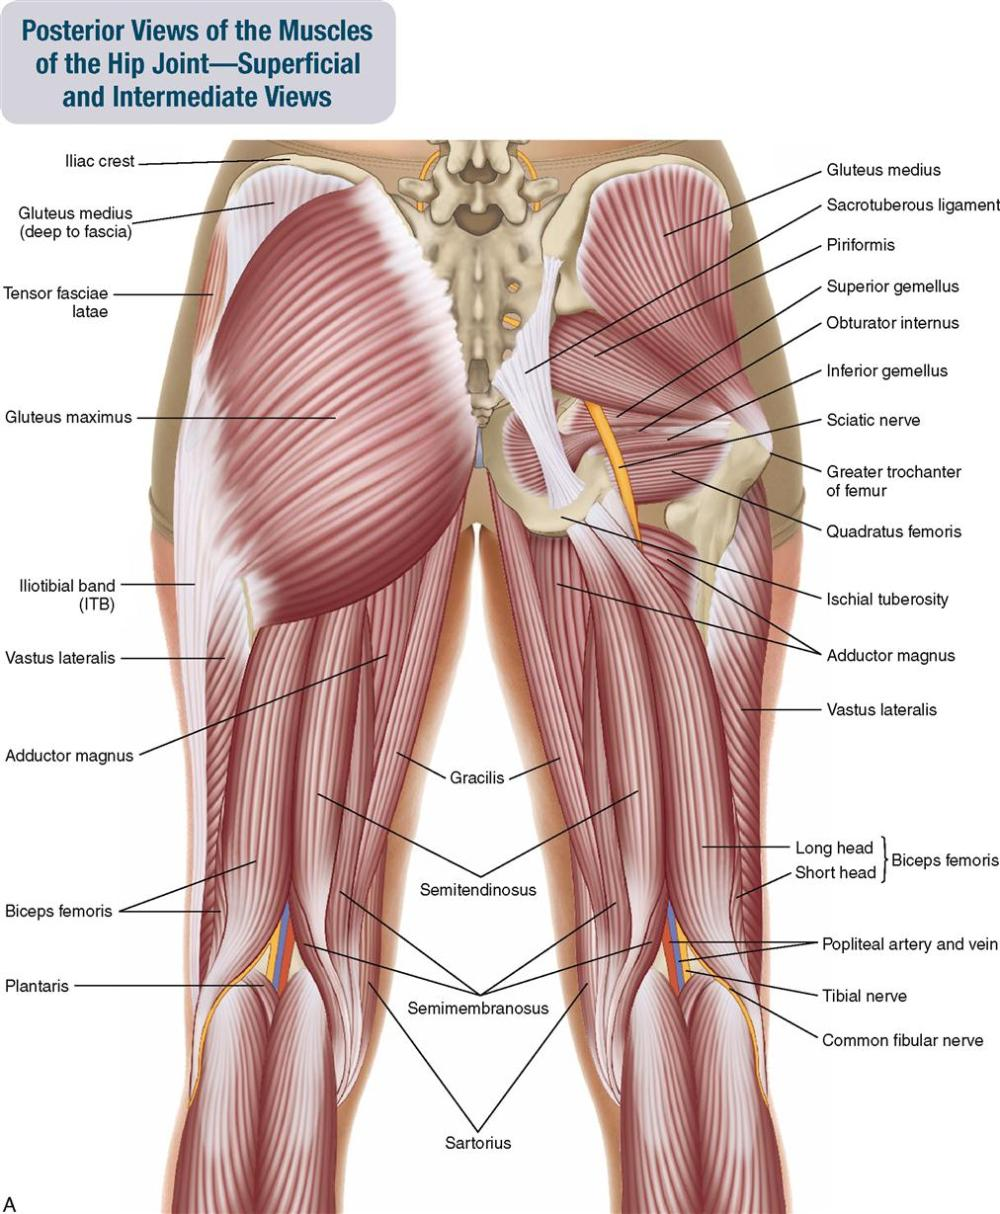 medium resolution of figure 10 2 posterior views of the muscles of the hip joint a superficial view on the left and an intermediate view on the right